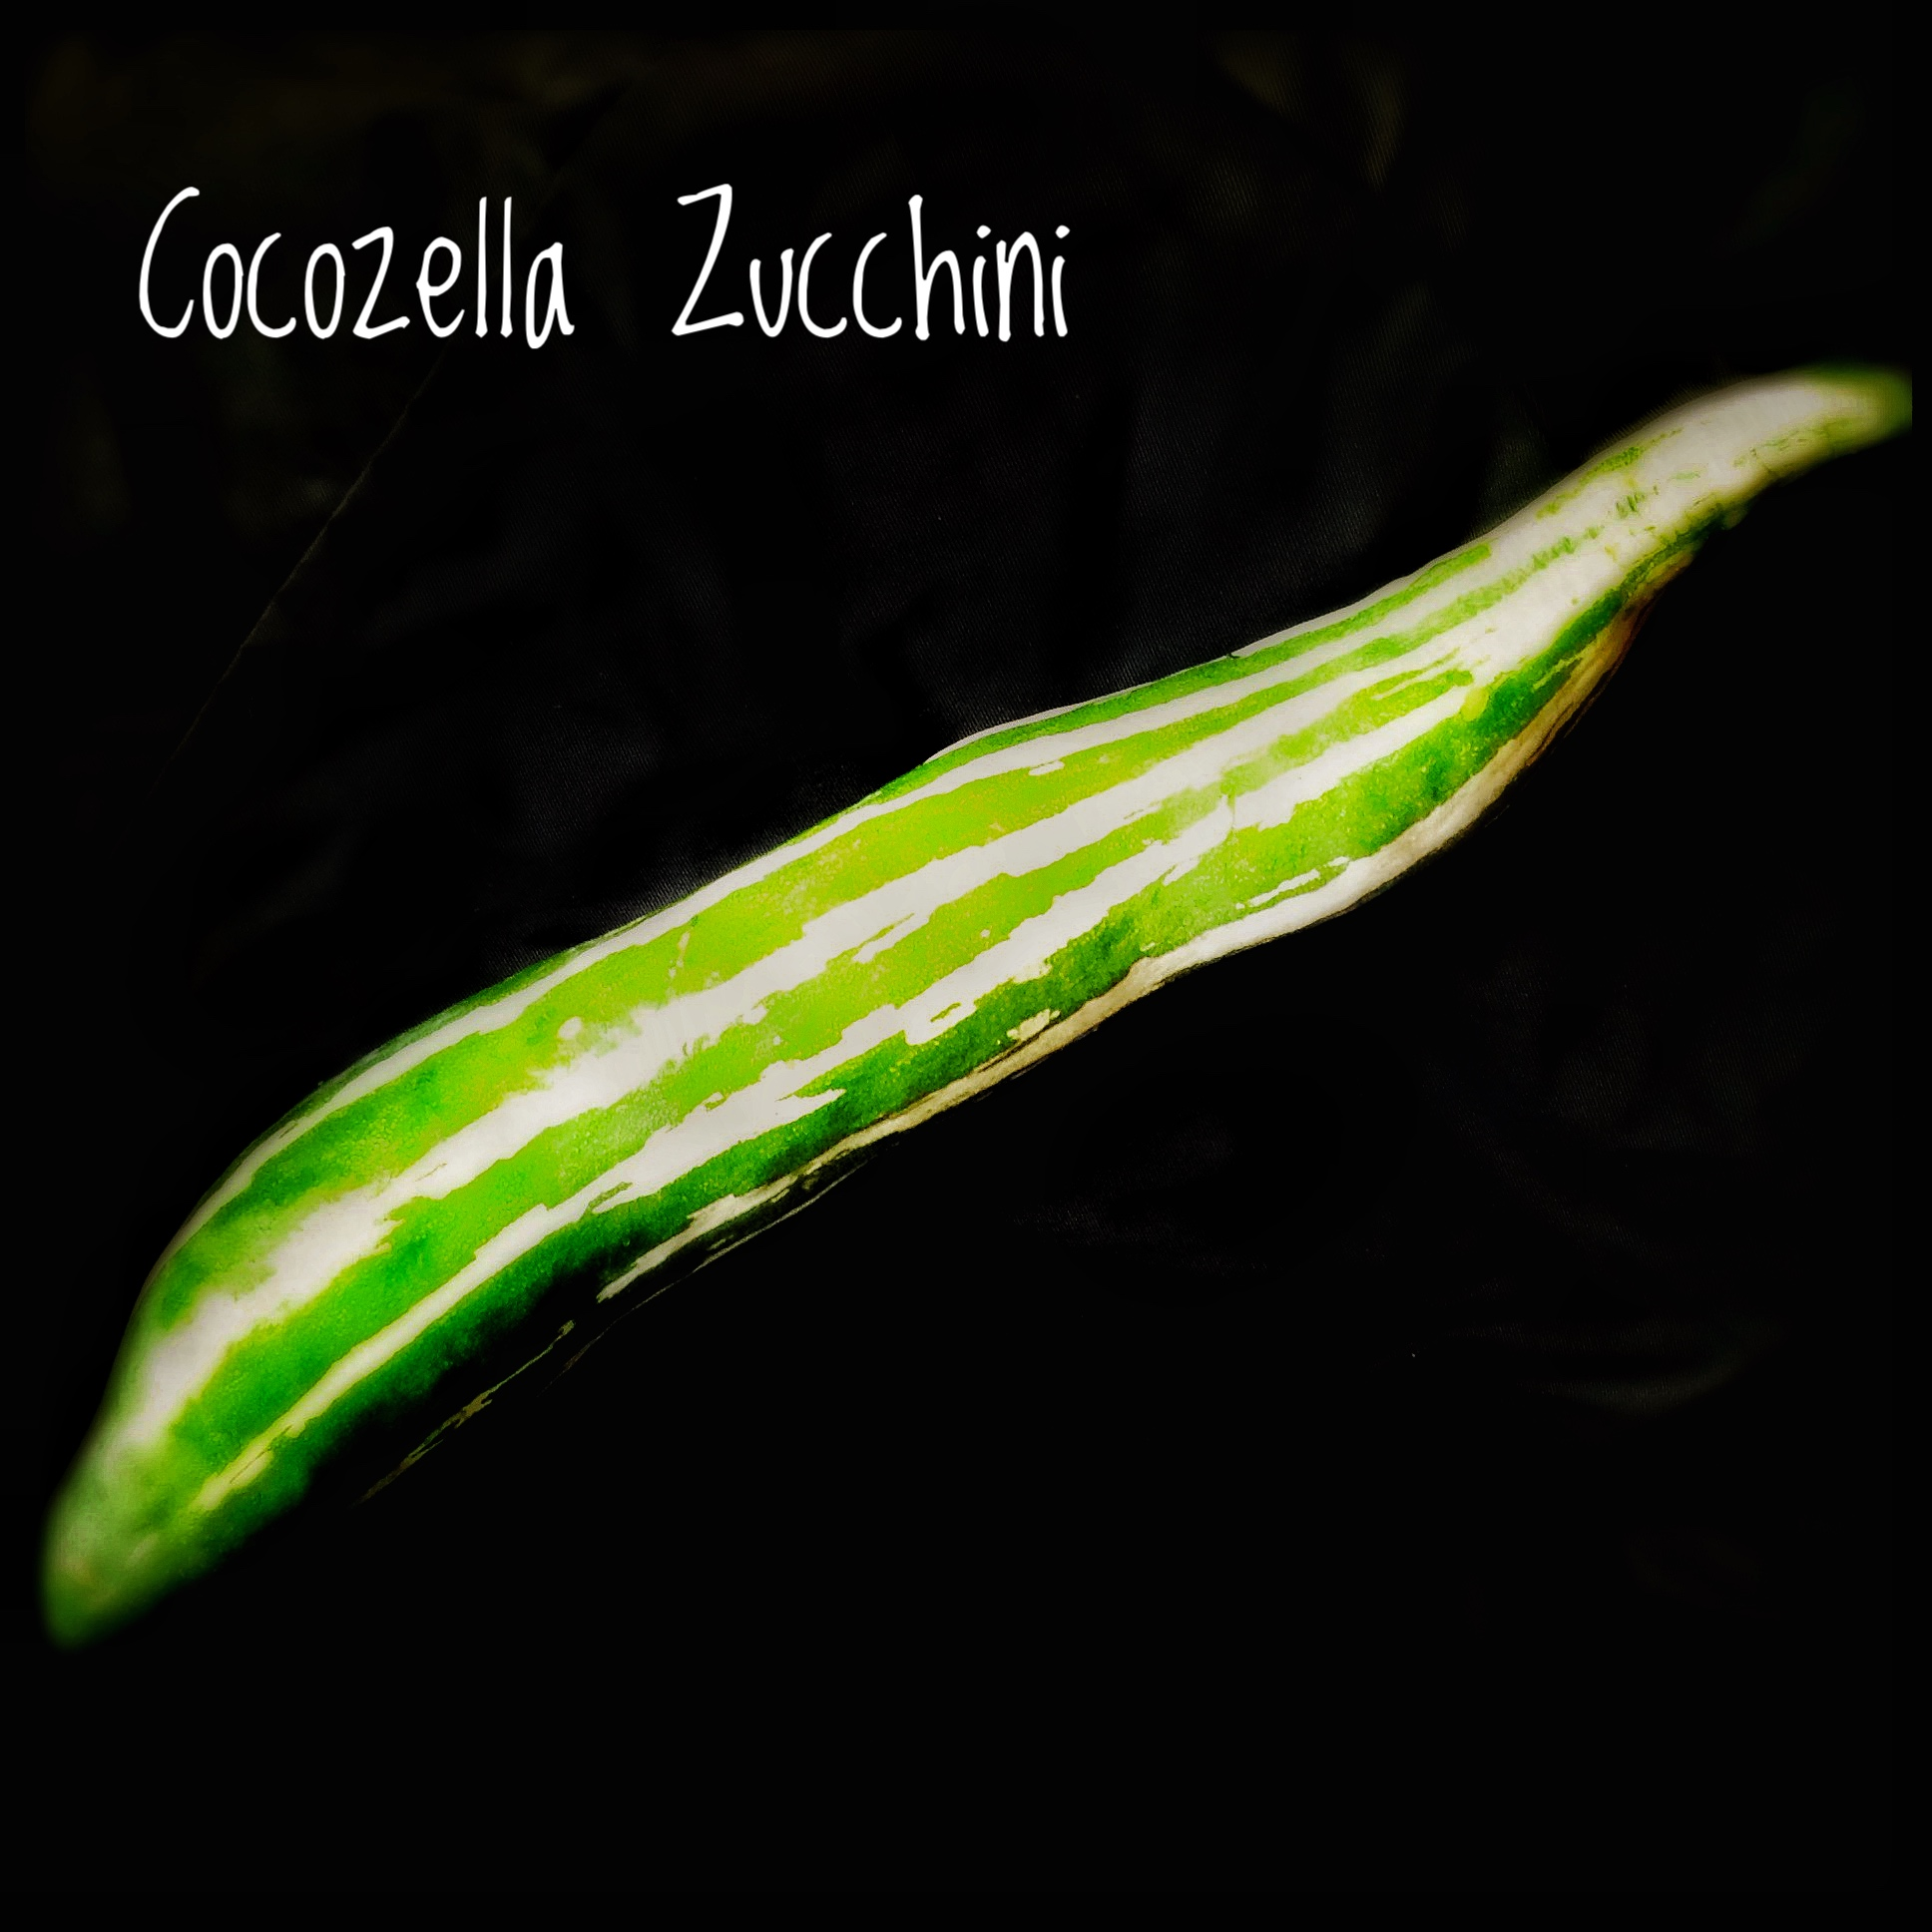 Ingredients: What is Cocozella Zucchini?